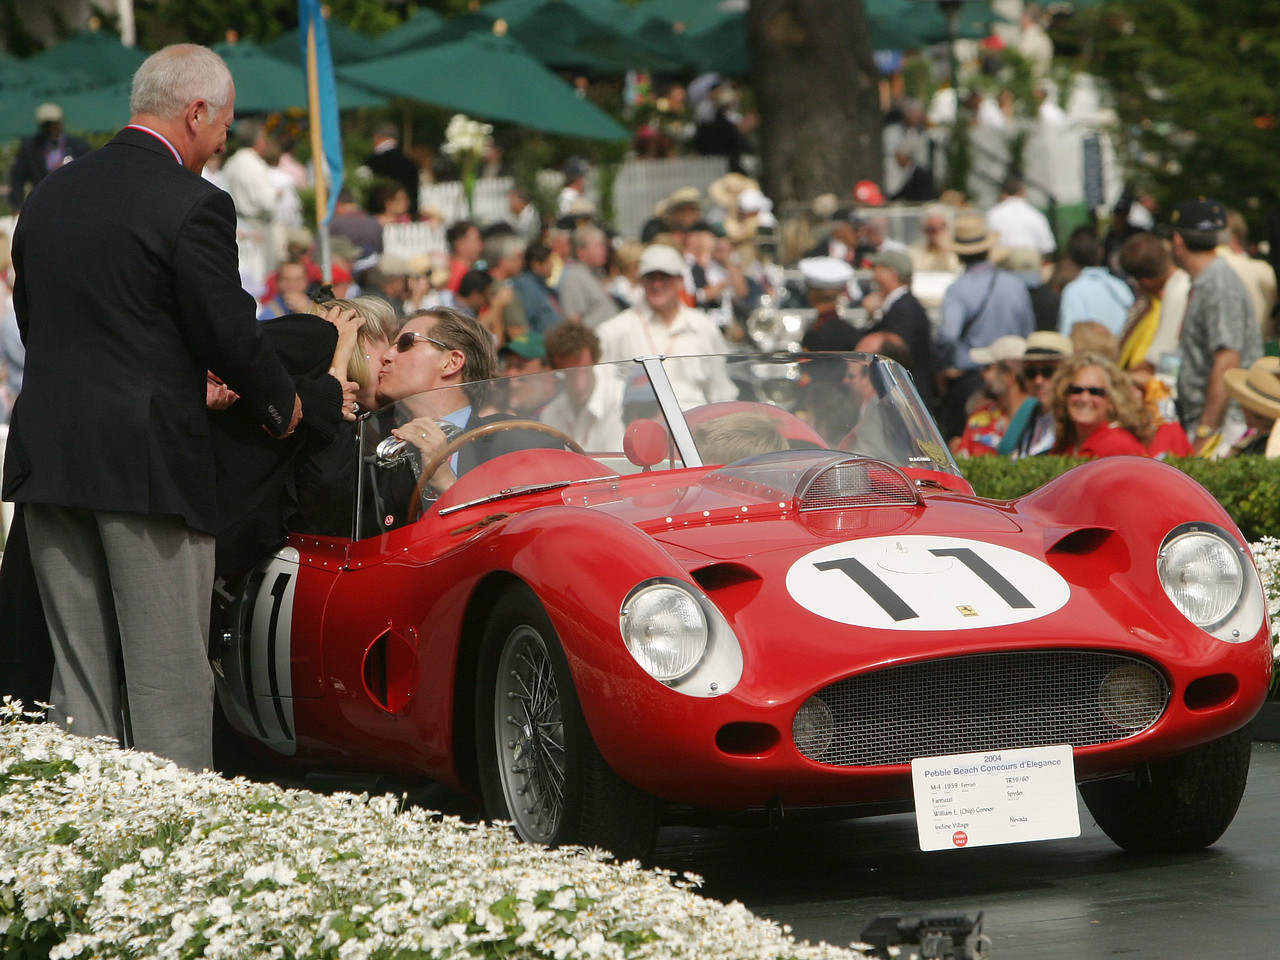 1959 Ferrari TR59/60 Fantuzzi Spyder.  Pebble Beach Cup.